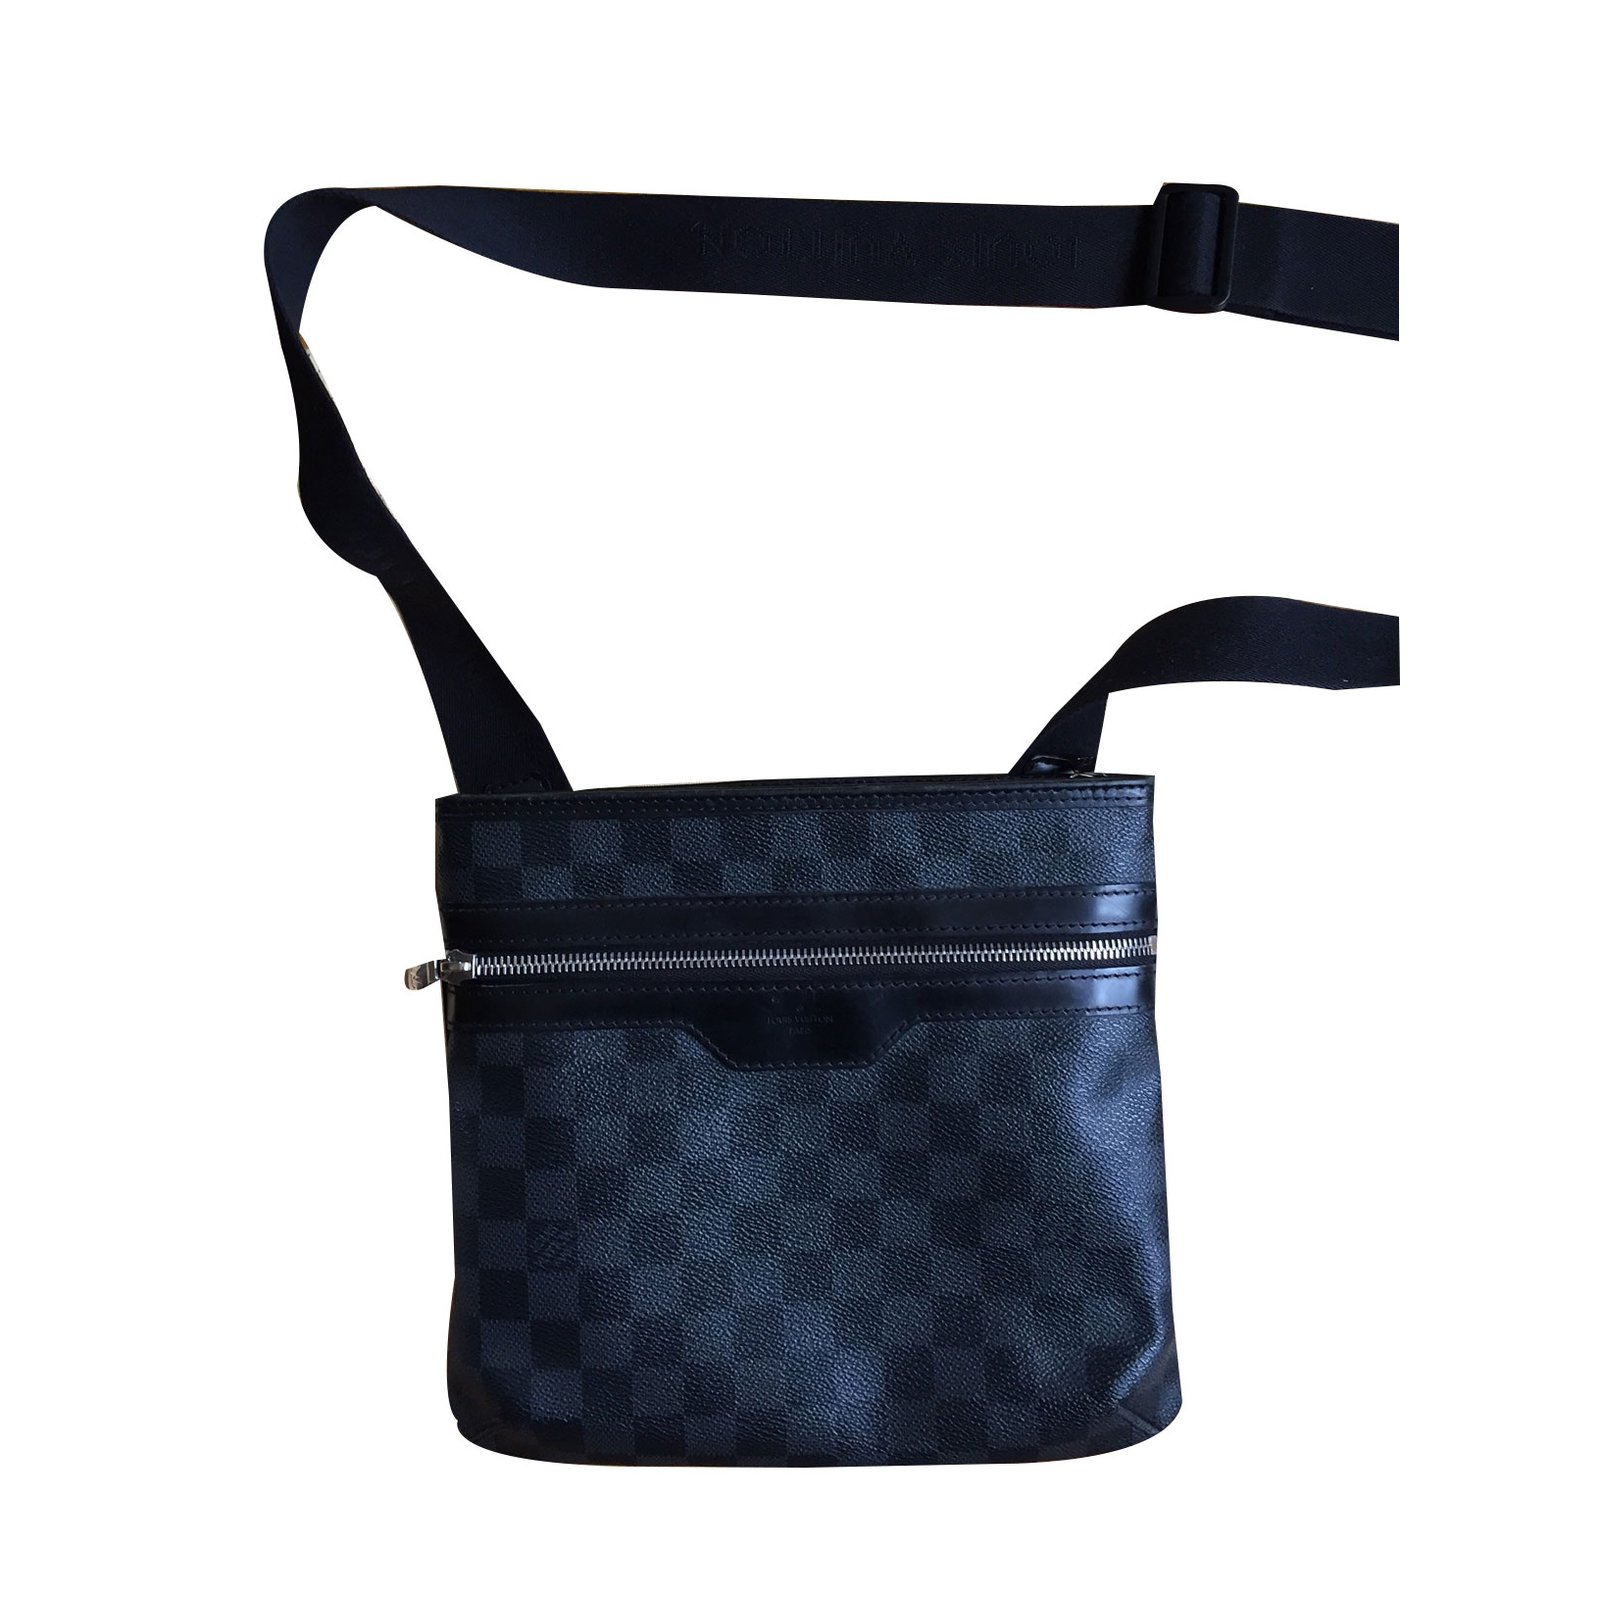 Louis Vuitton Bags Briefcases Bags Briefcases Leather ...